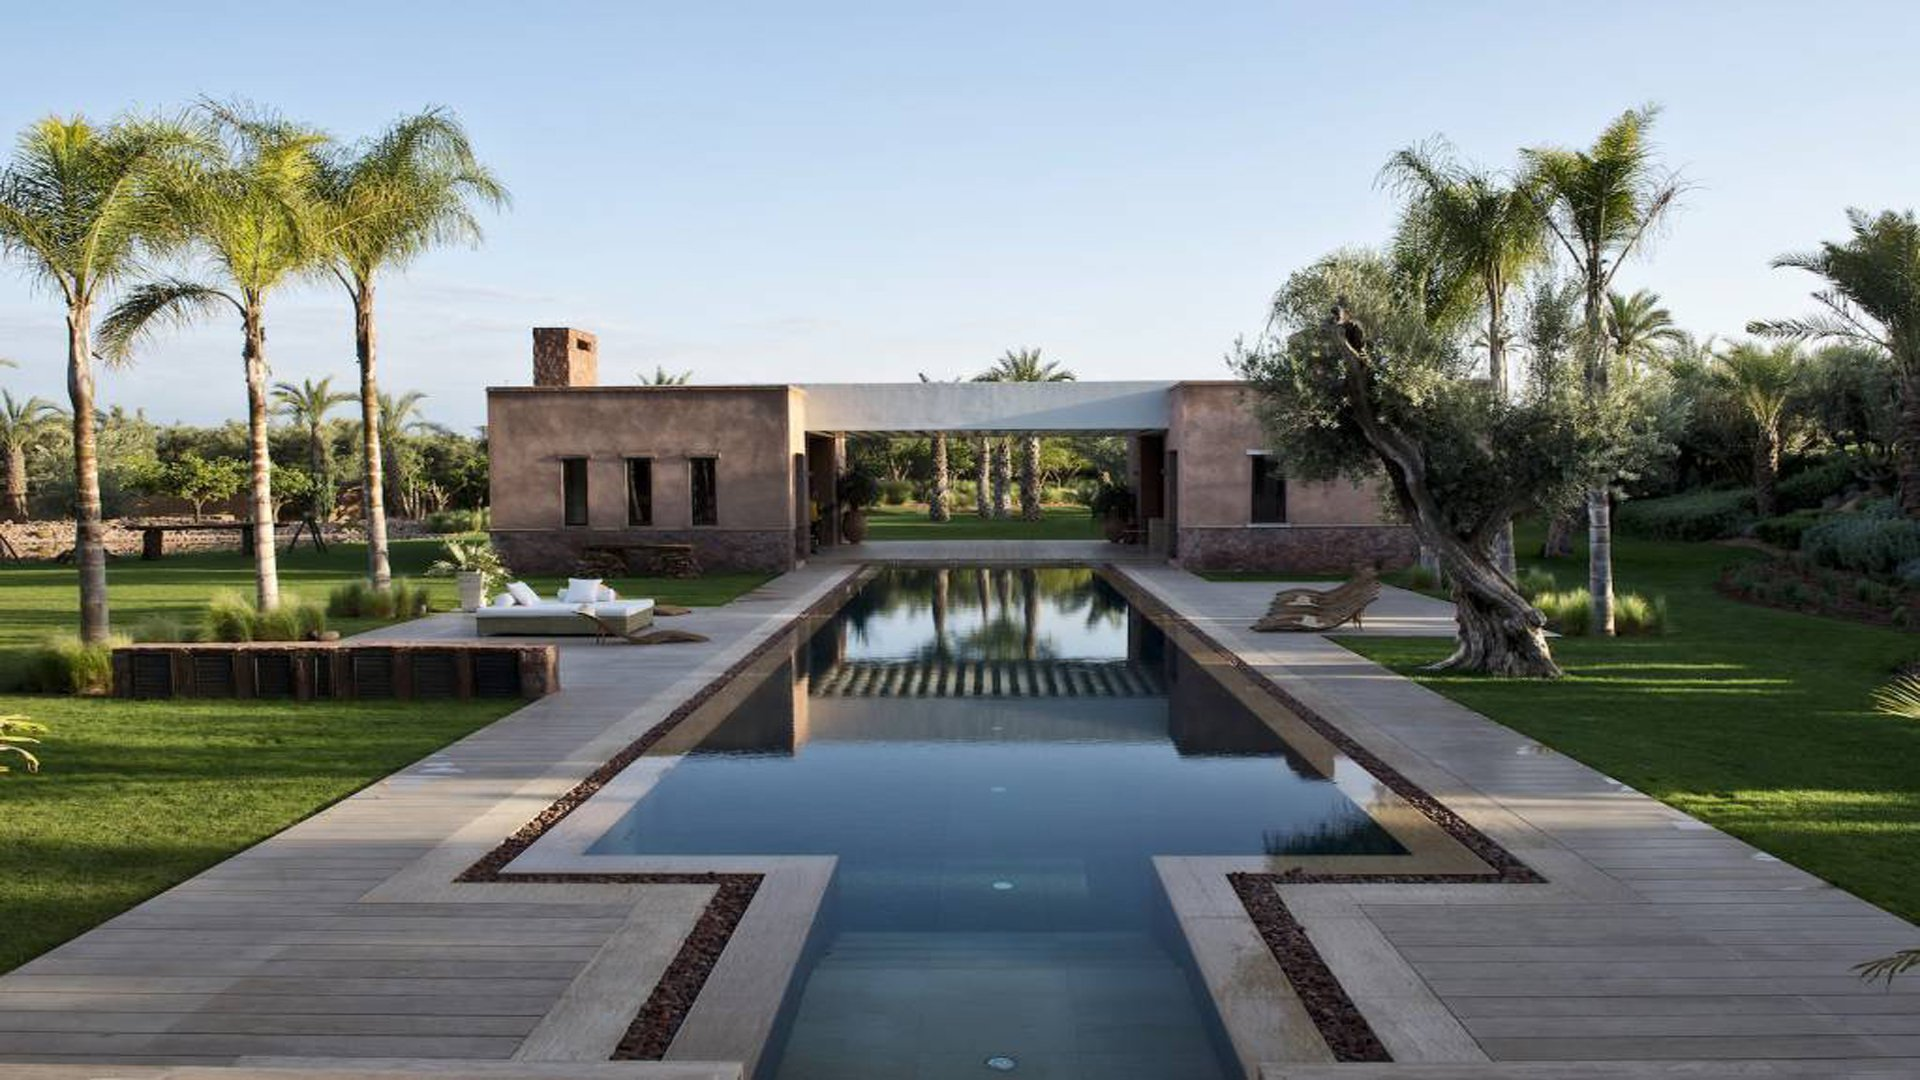 Contemporary design meets Moroccan building traditions at this magnificent Moorish estate in the Red City.